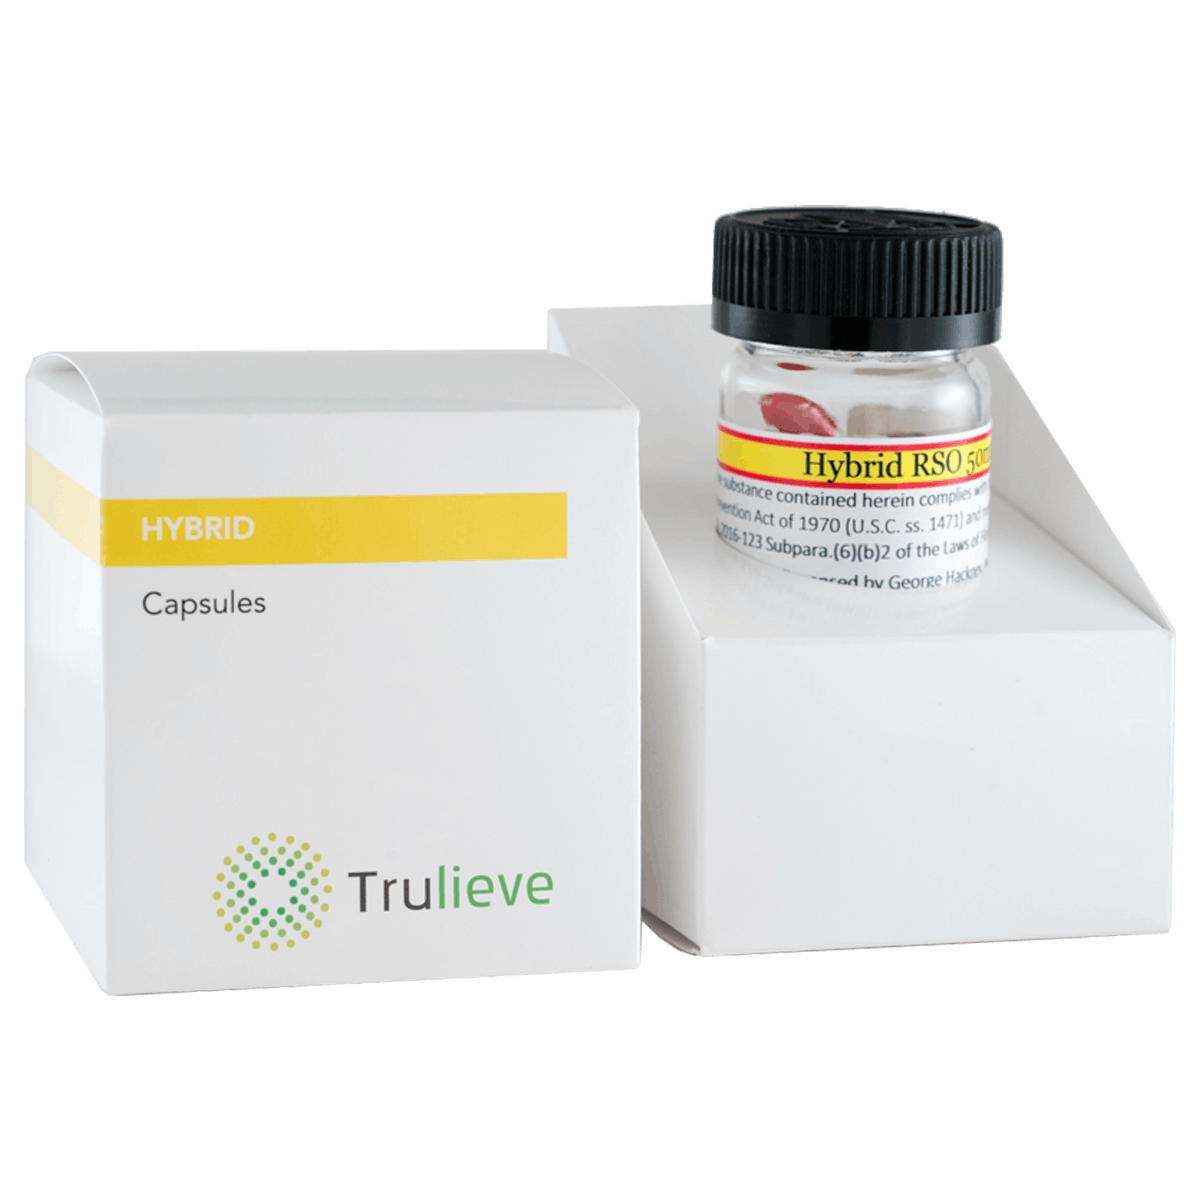 marijuana-dispensaries-trulieve-bradenton-in-bradenton-capsule-bottle-25ct-50mg-hybrid